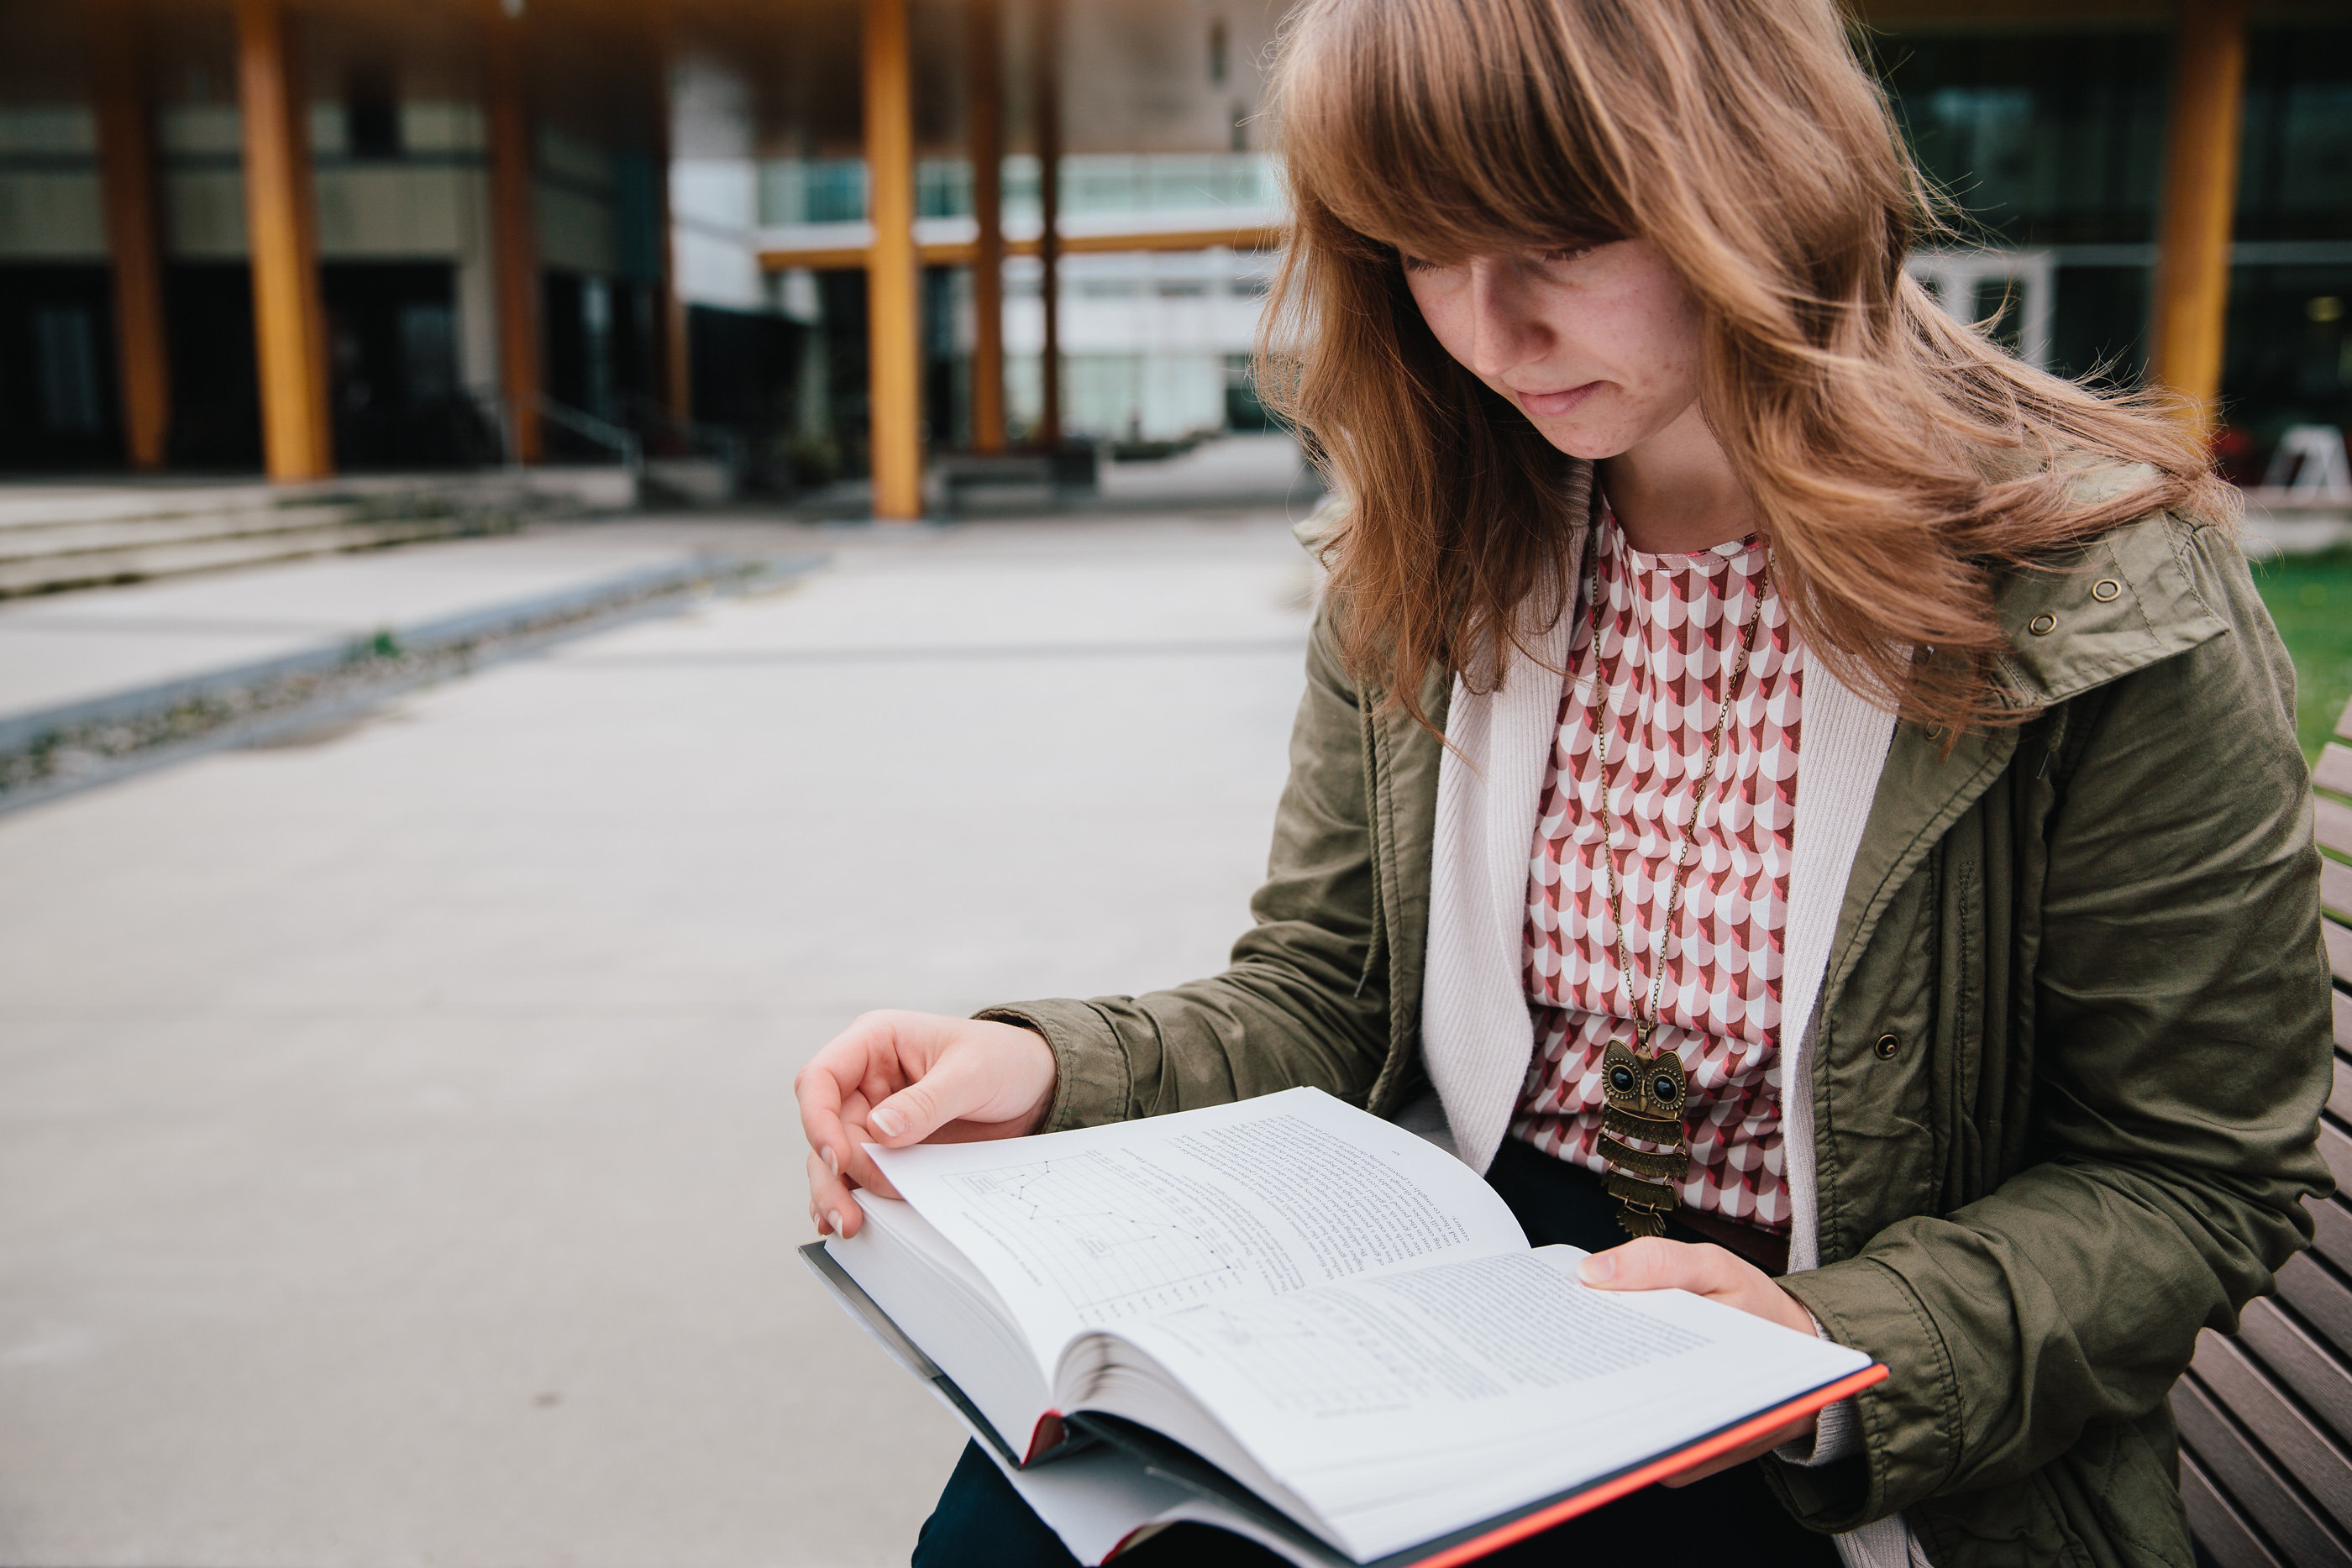 female student reading outdoors